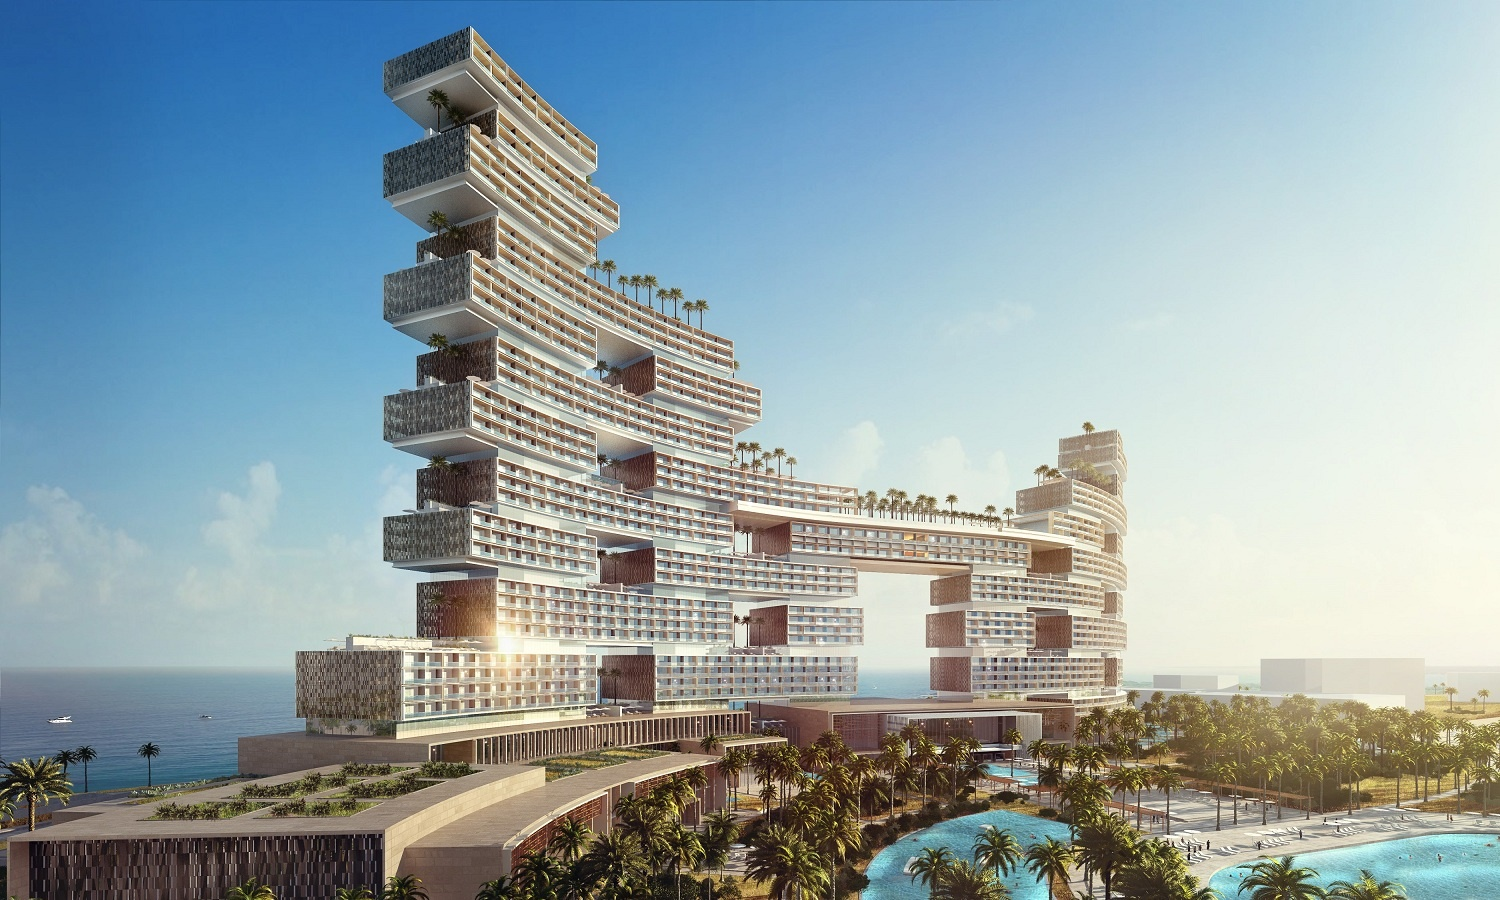 An artist's rendering of the Royal Atlantis Resort and Residences.